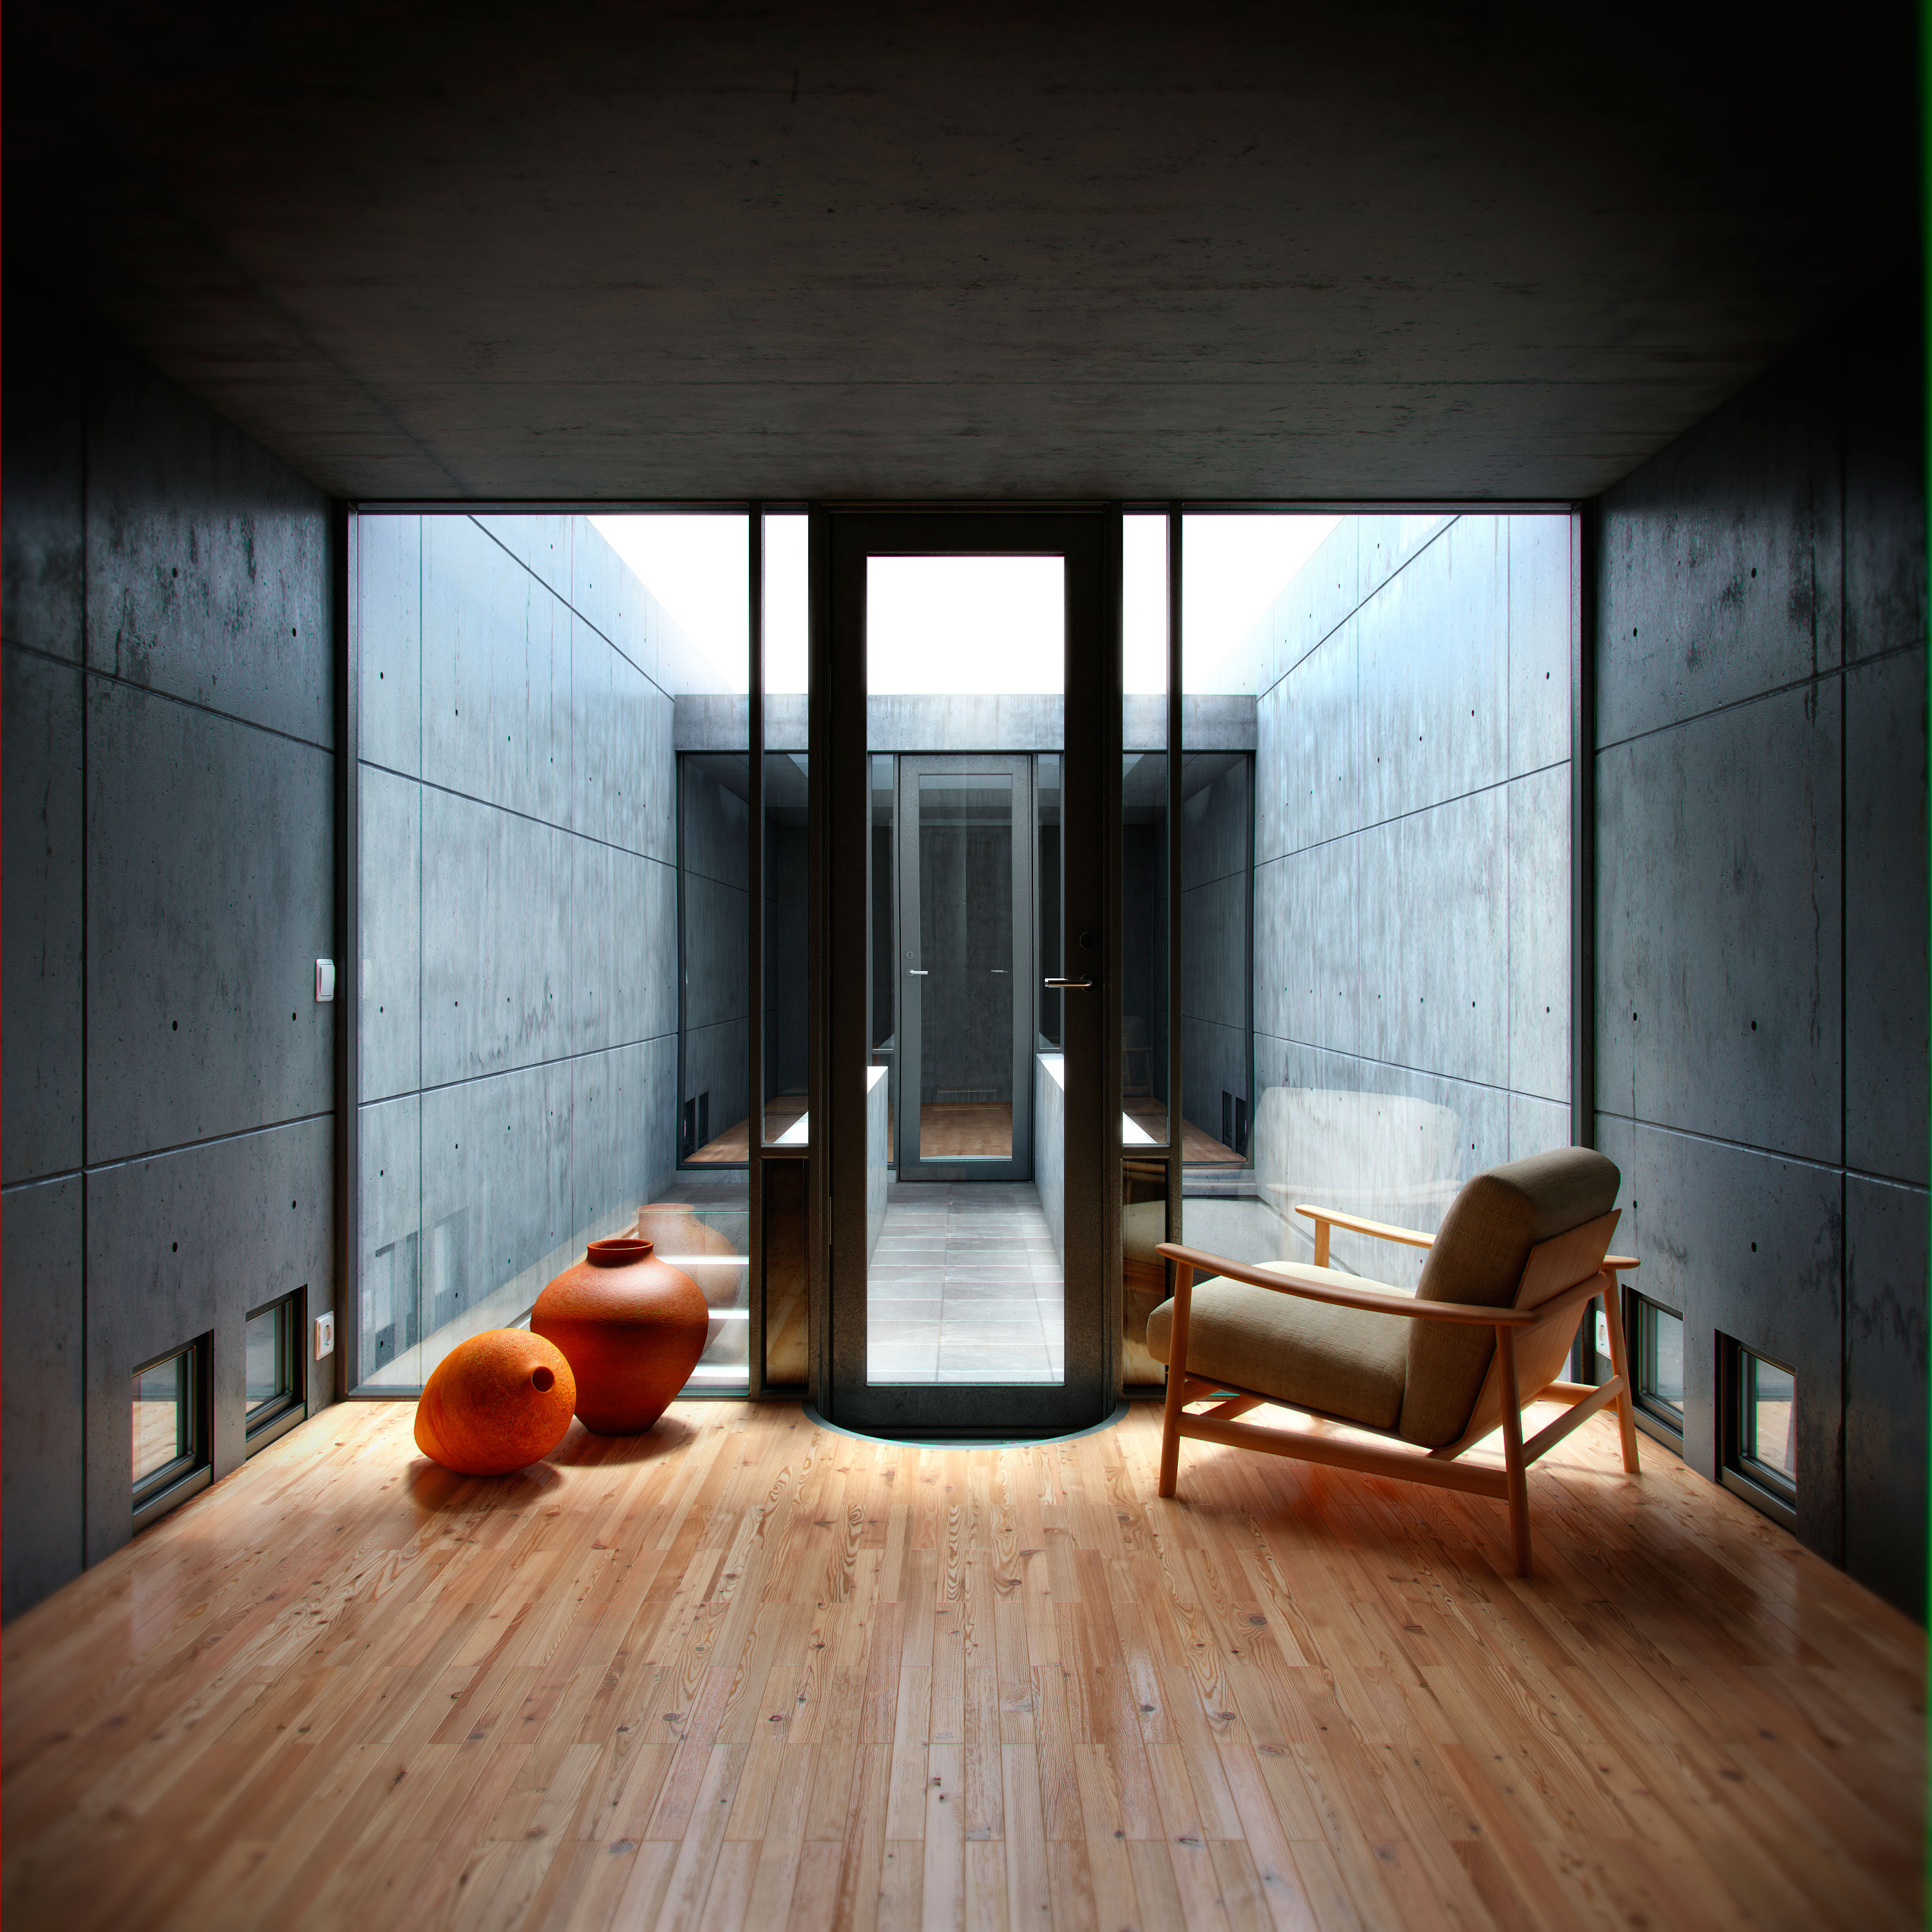 Azuma House  Picture of the Day